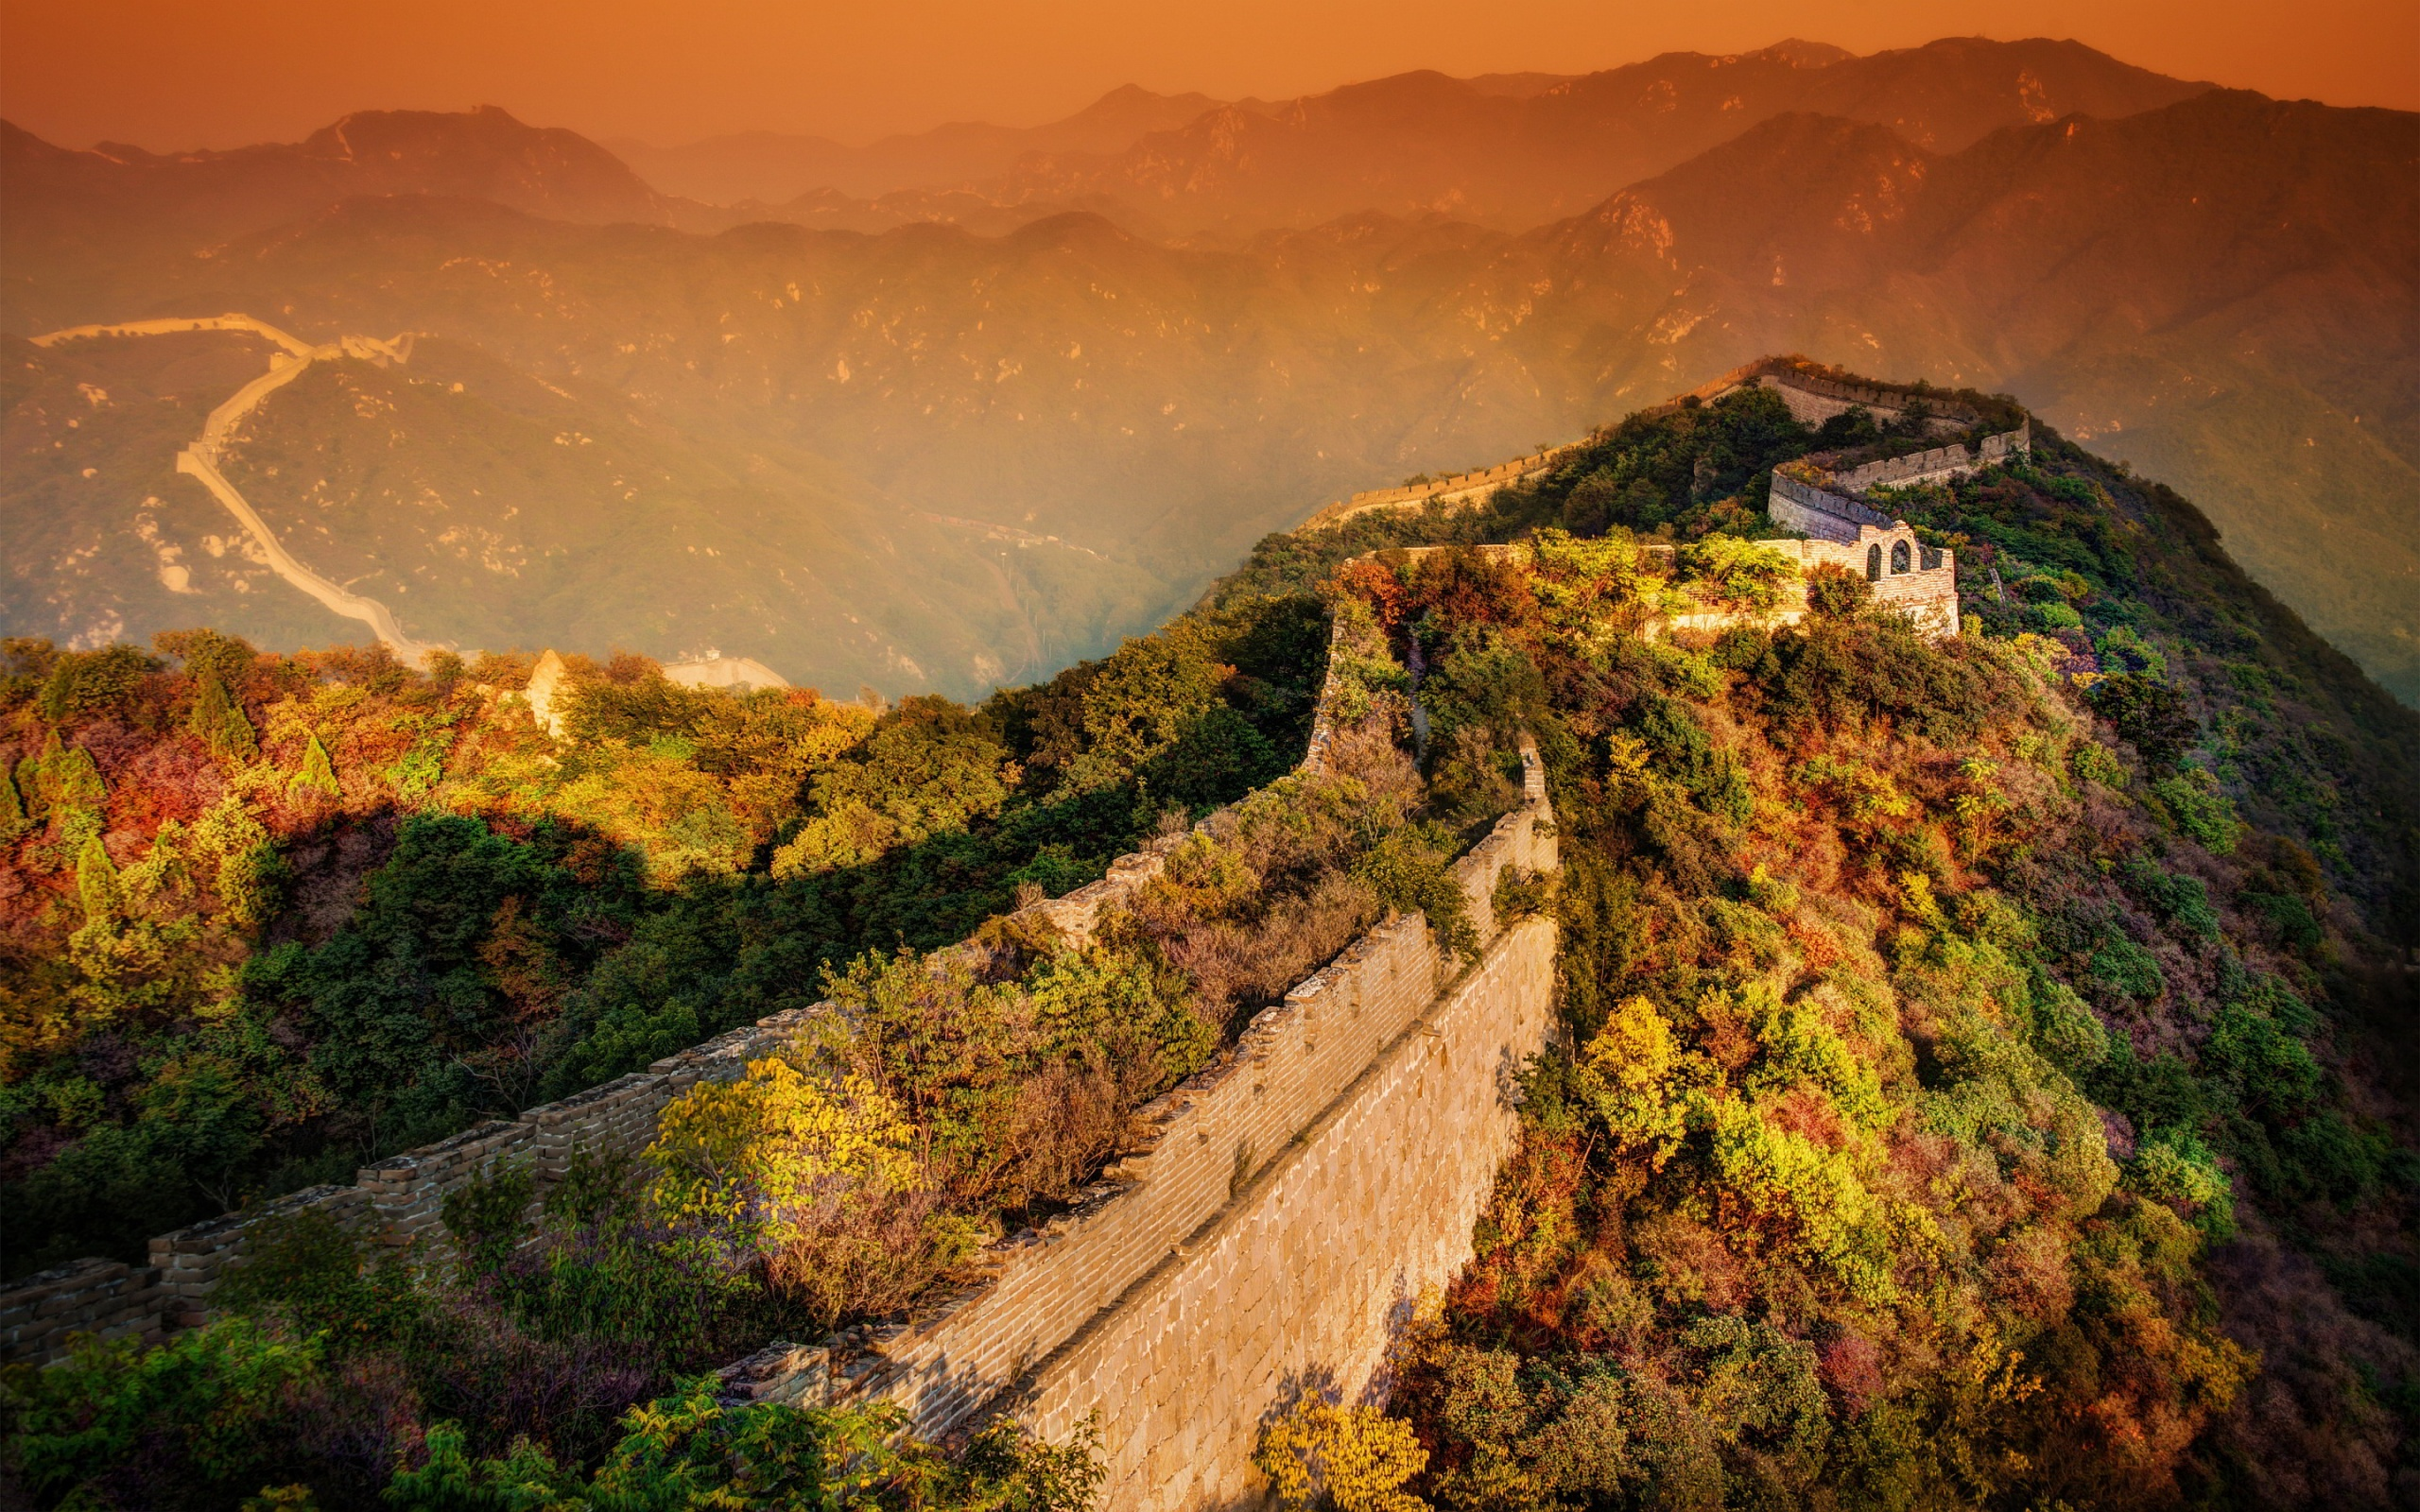 6951636-sunset-in-great-wall-of-china-wallpaper